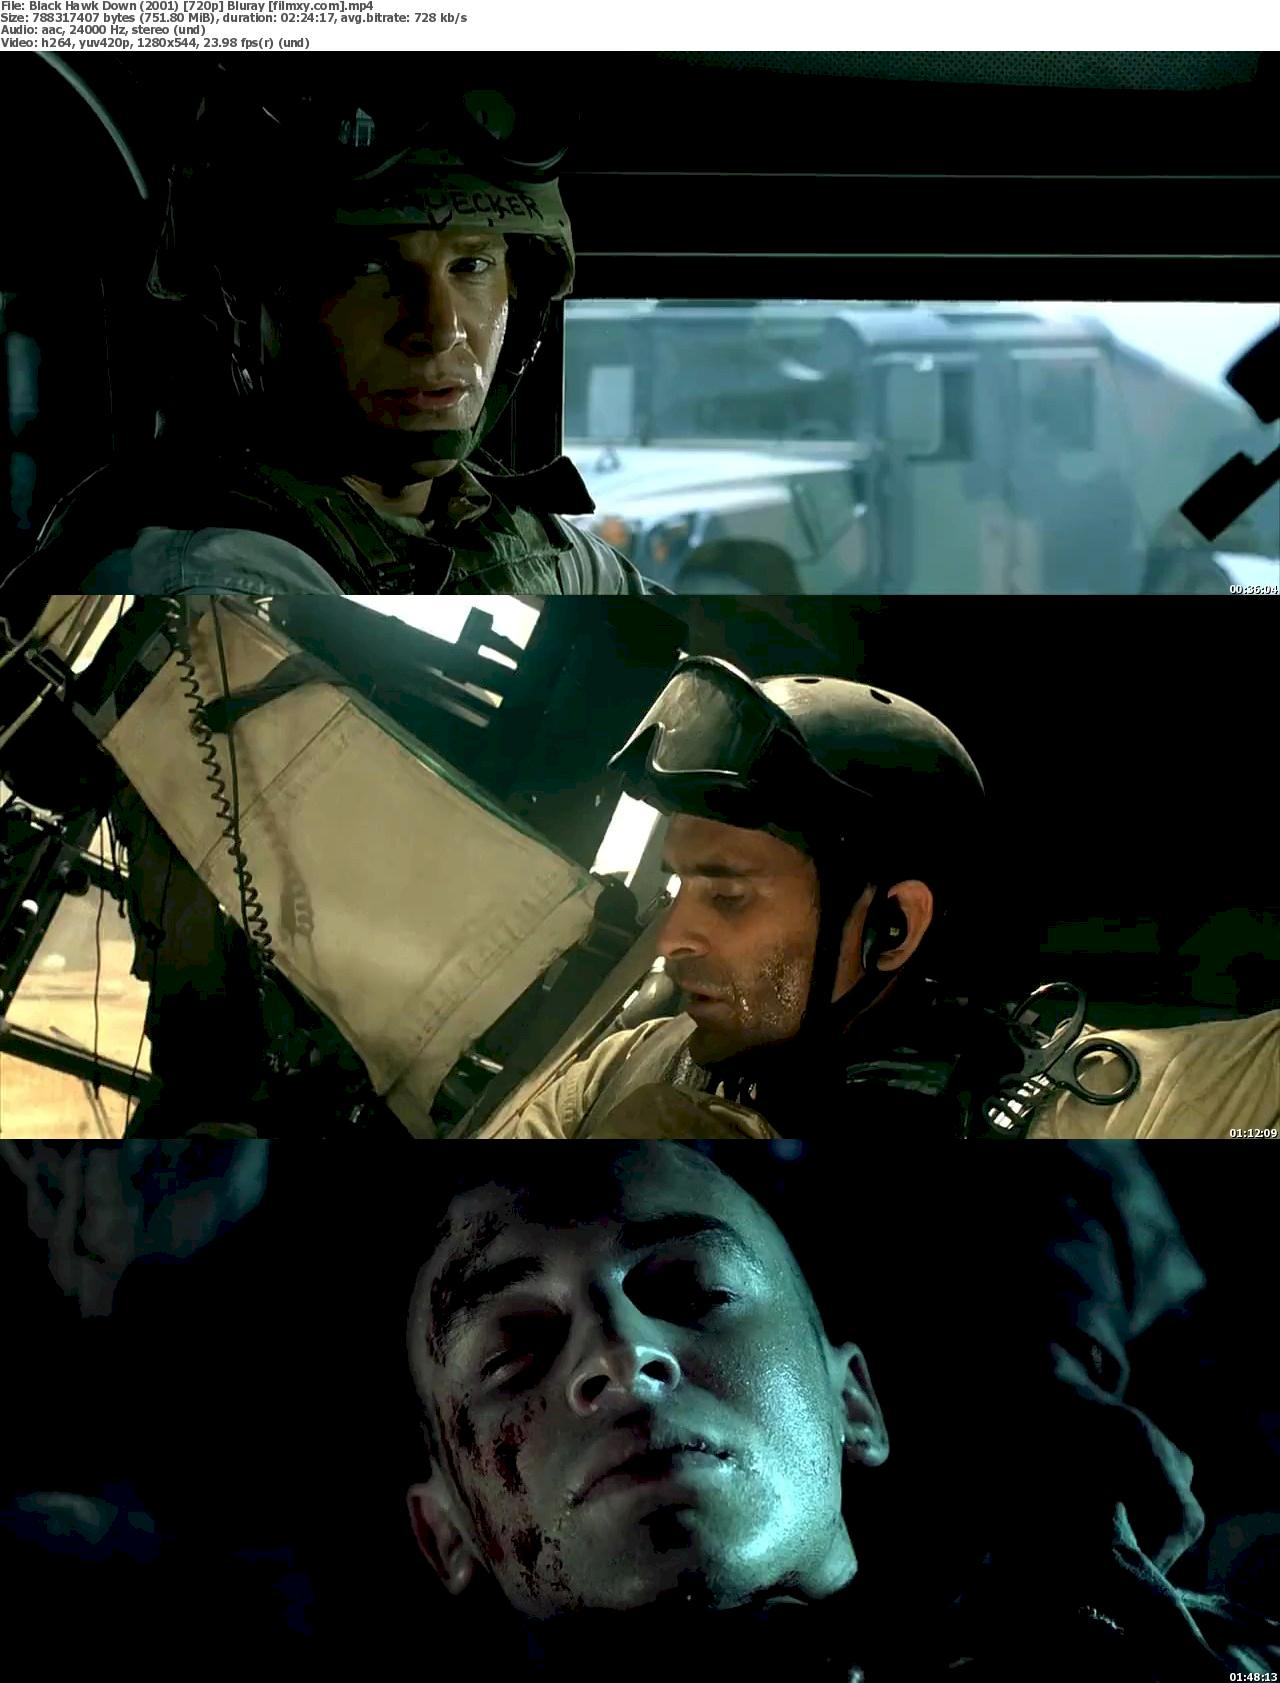 Black Hawk Down (2001) 720p & 1080p Bluray Free Download 720p Screenshot